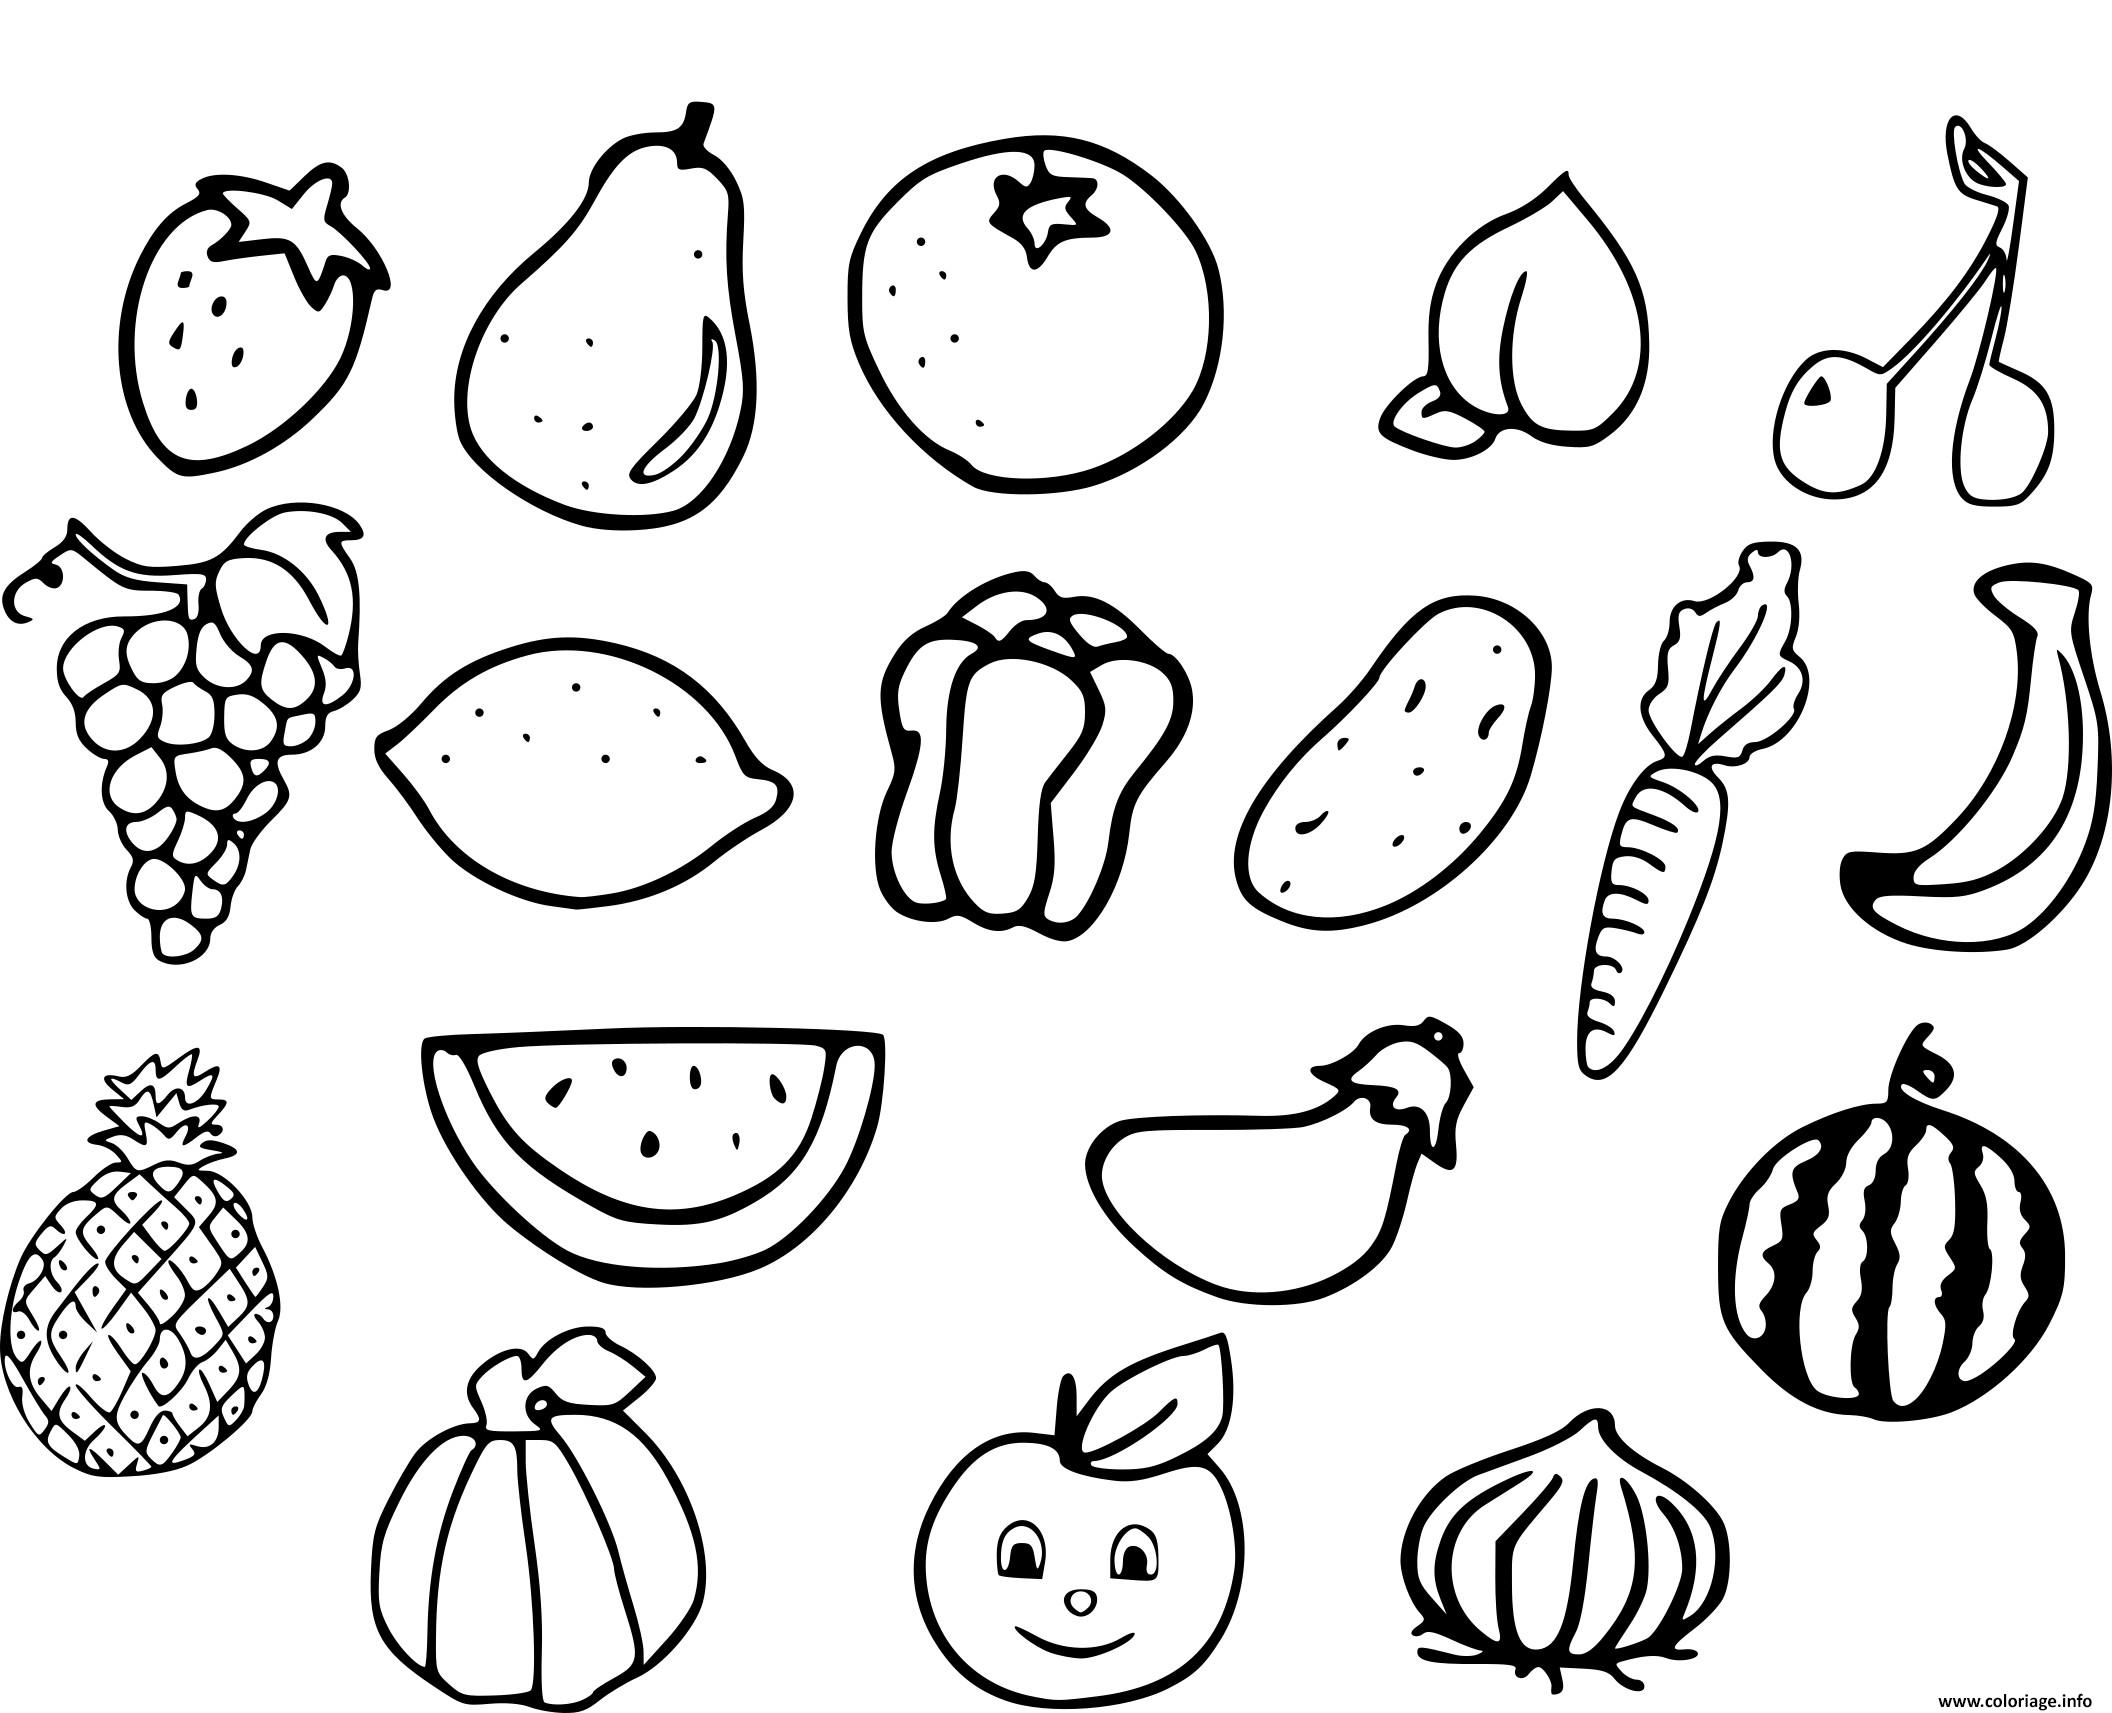 Beau Images De Fruits A Colorier